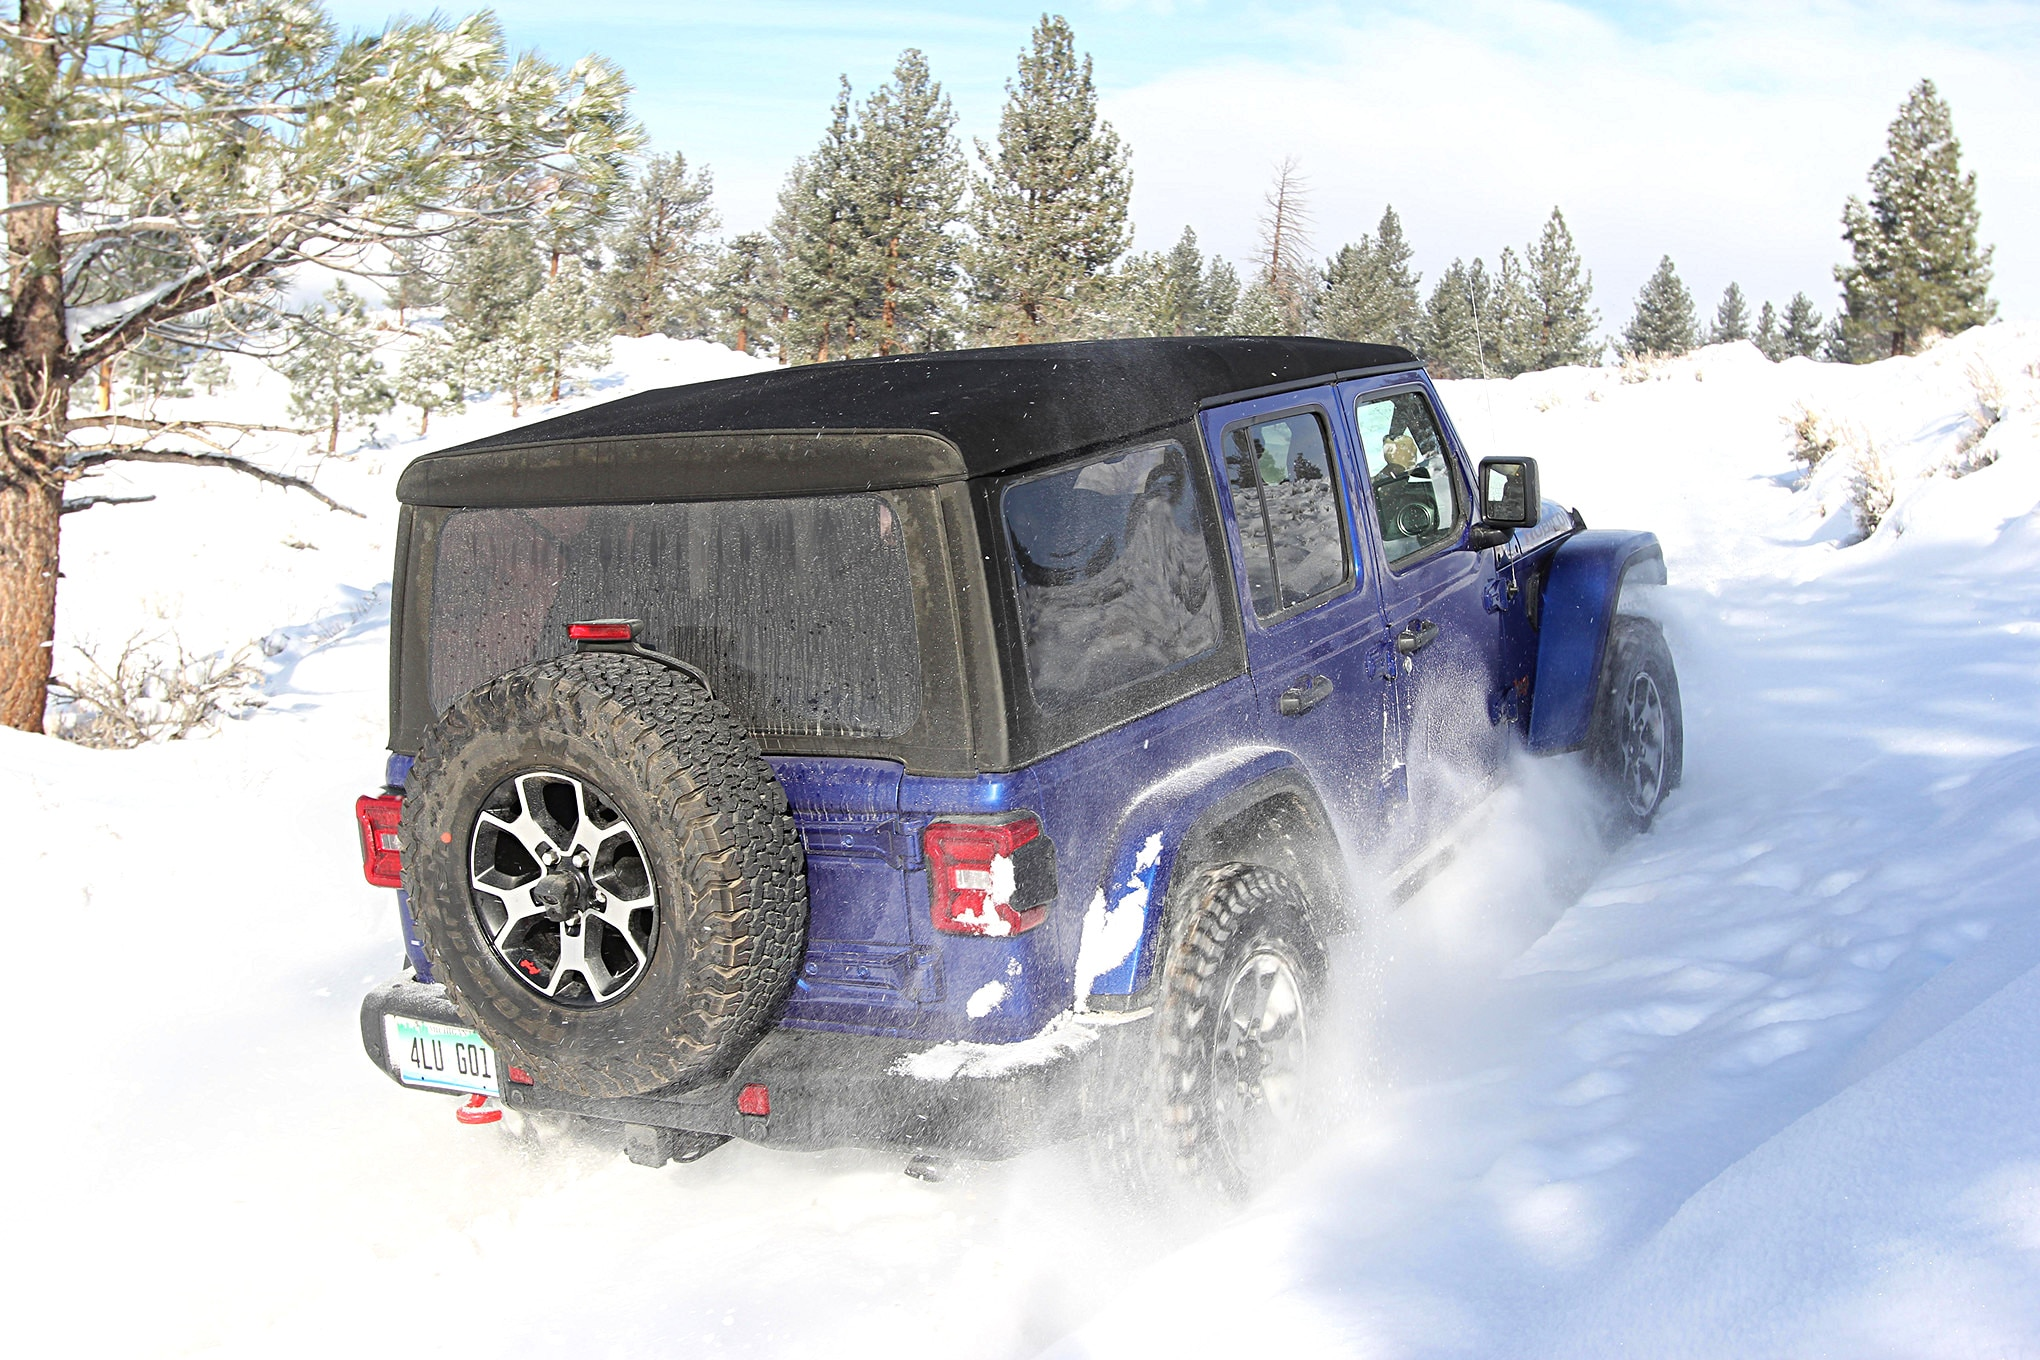 2019 suv of the year jeep wrangler unlimited rubicon rear.JPG